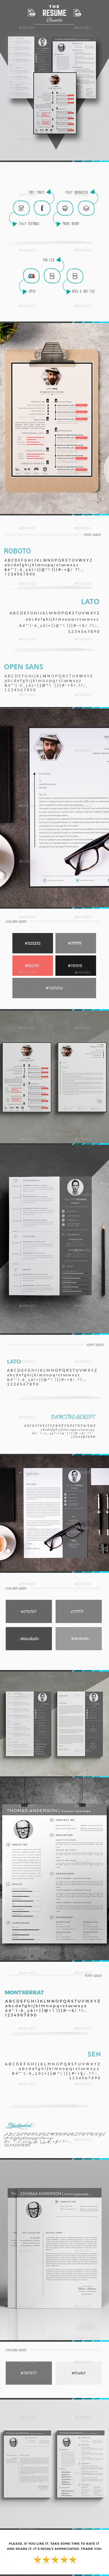 Resumes Bundle Design #cover letter #resume bundle  • Download here → https://graphicriver.net/item/resumes-bundle-design/21422850?ref=pxcr